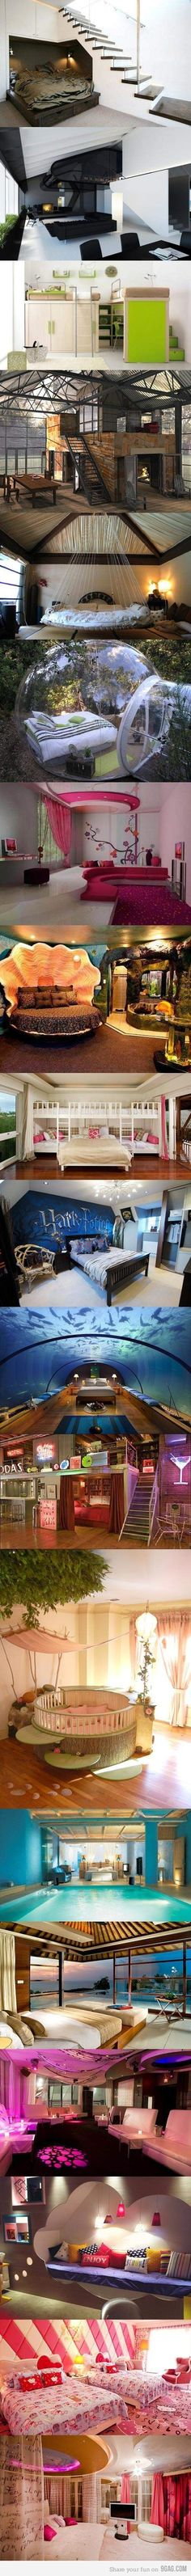 Dream Bedrooms.